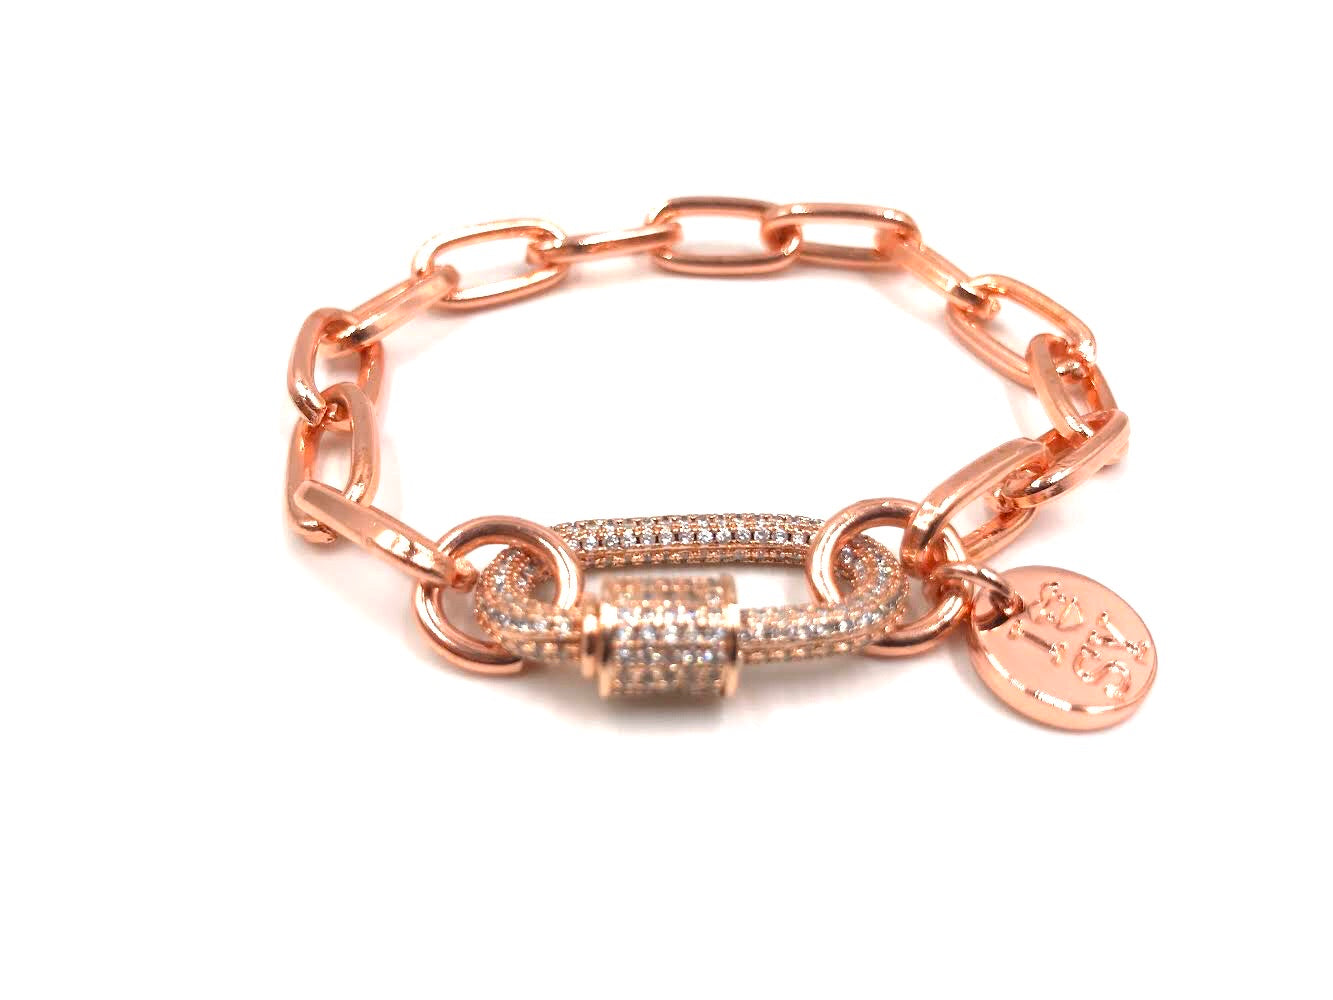 Rose gold bracelet, zirconia studded clip